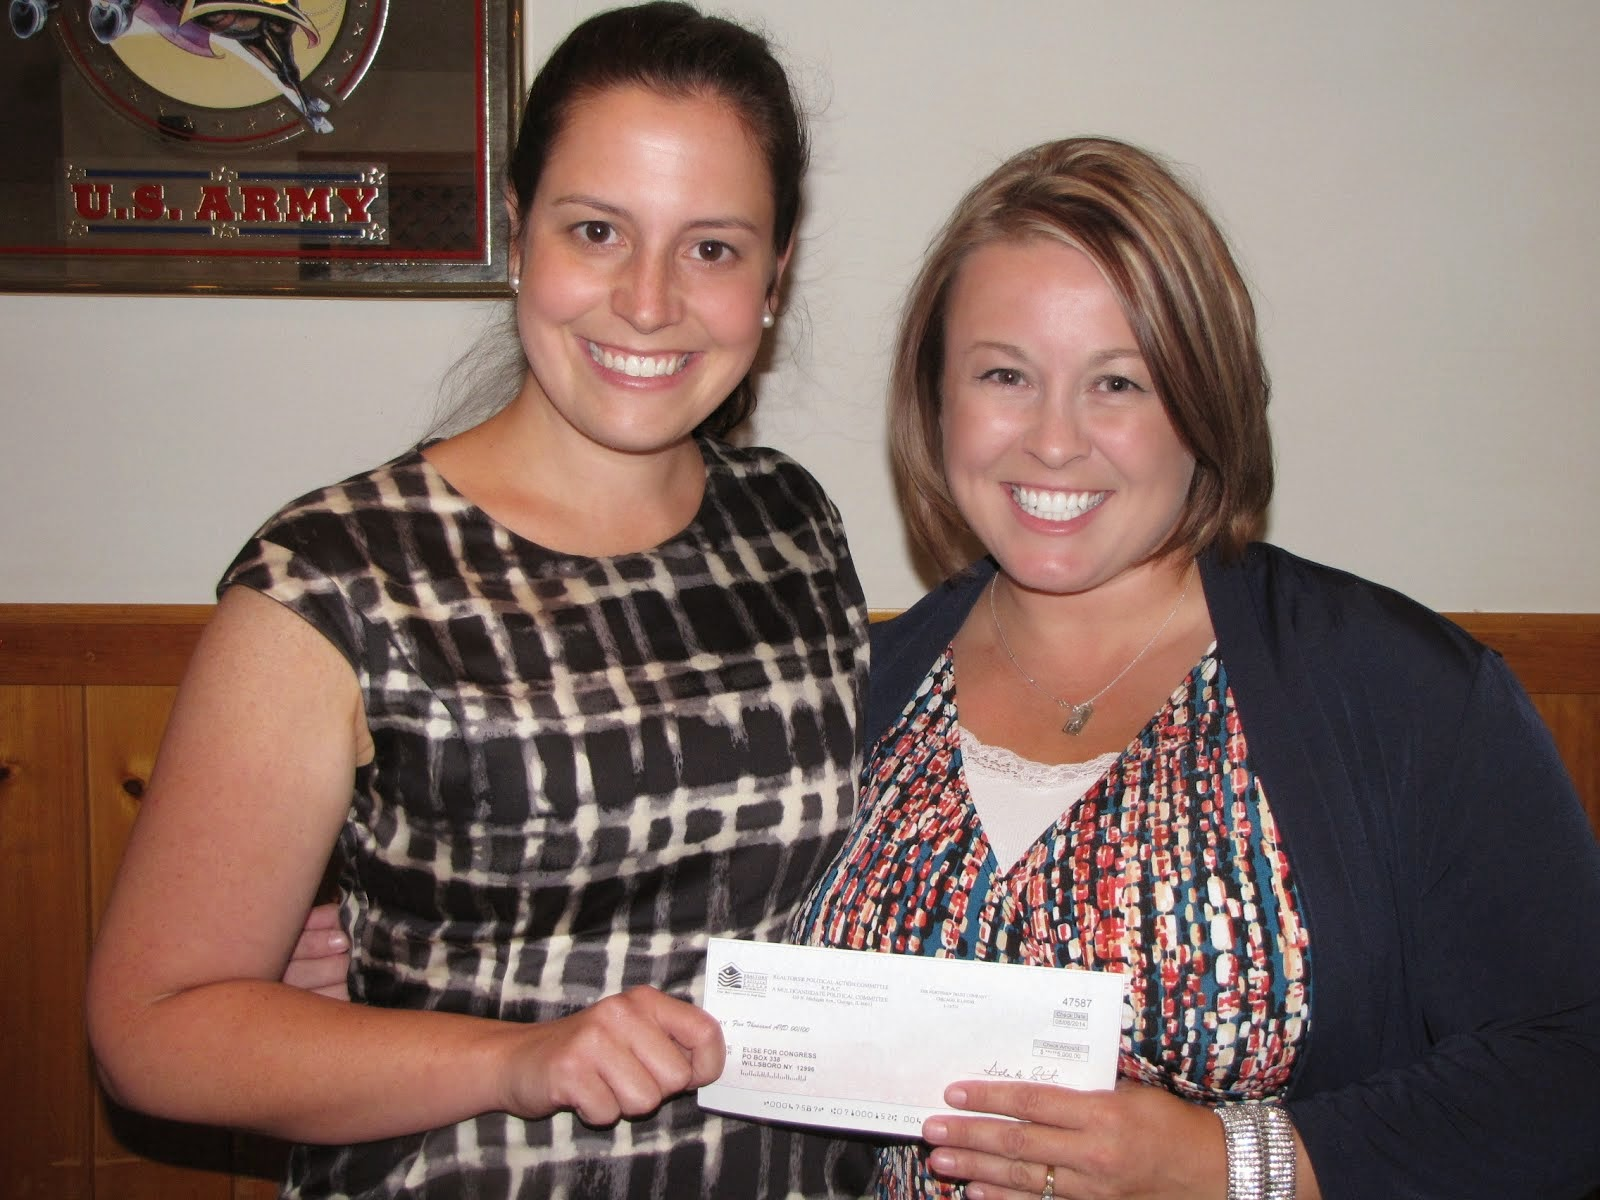 Check for $5000 from Realtors Presented to Elise Stefanik